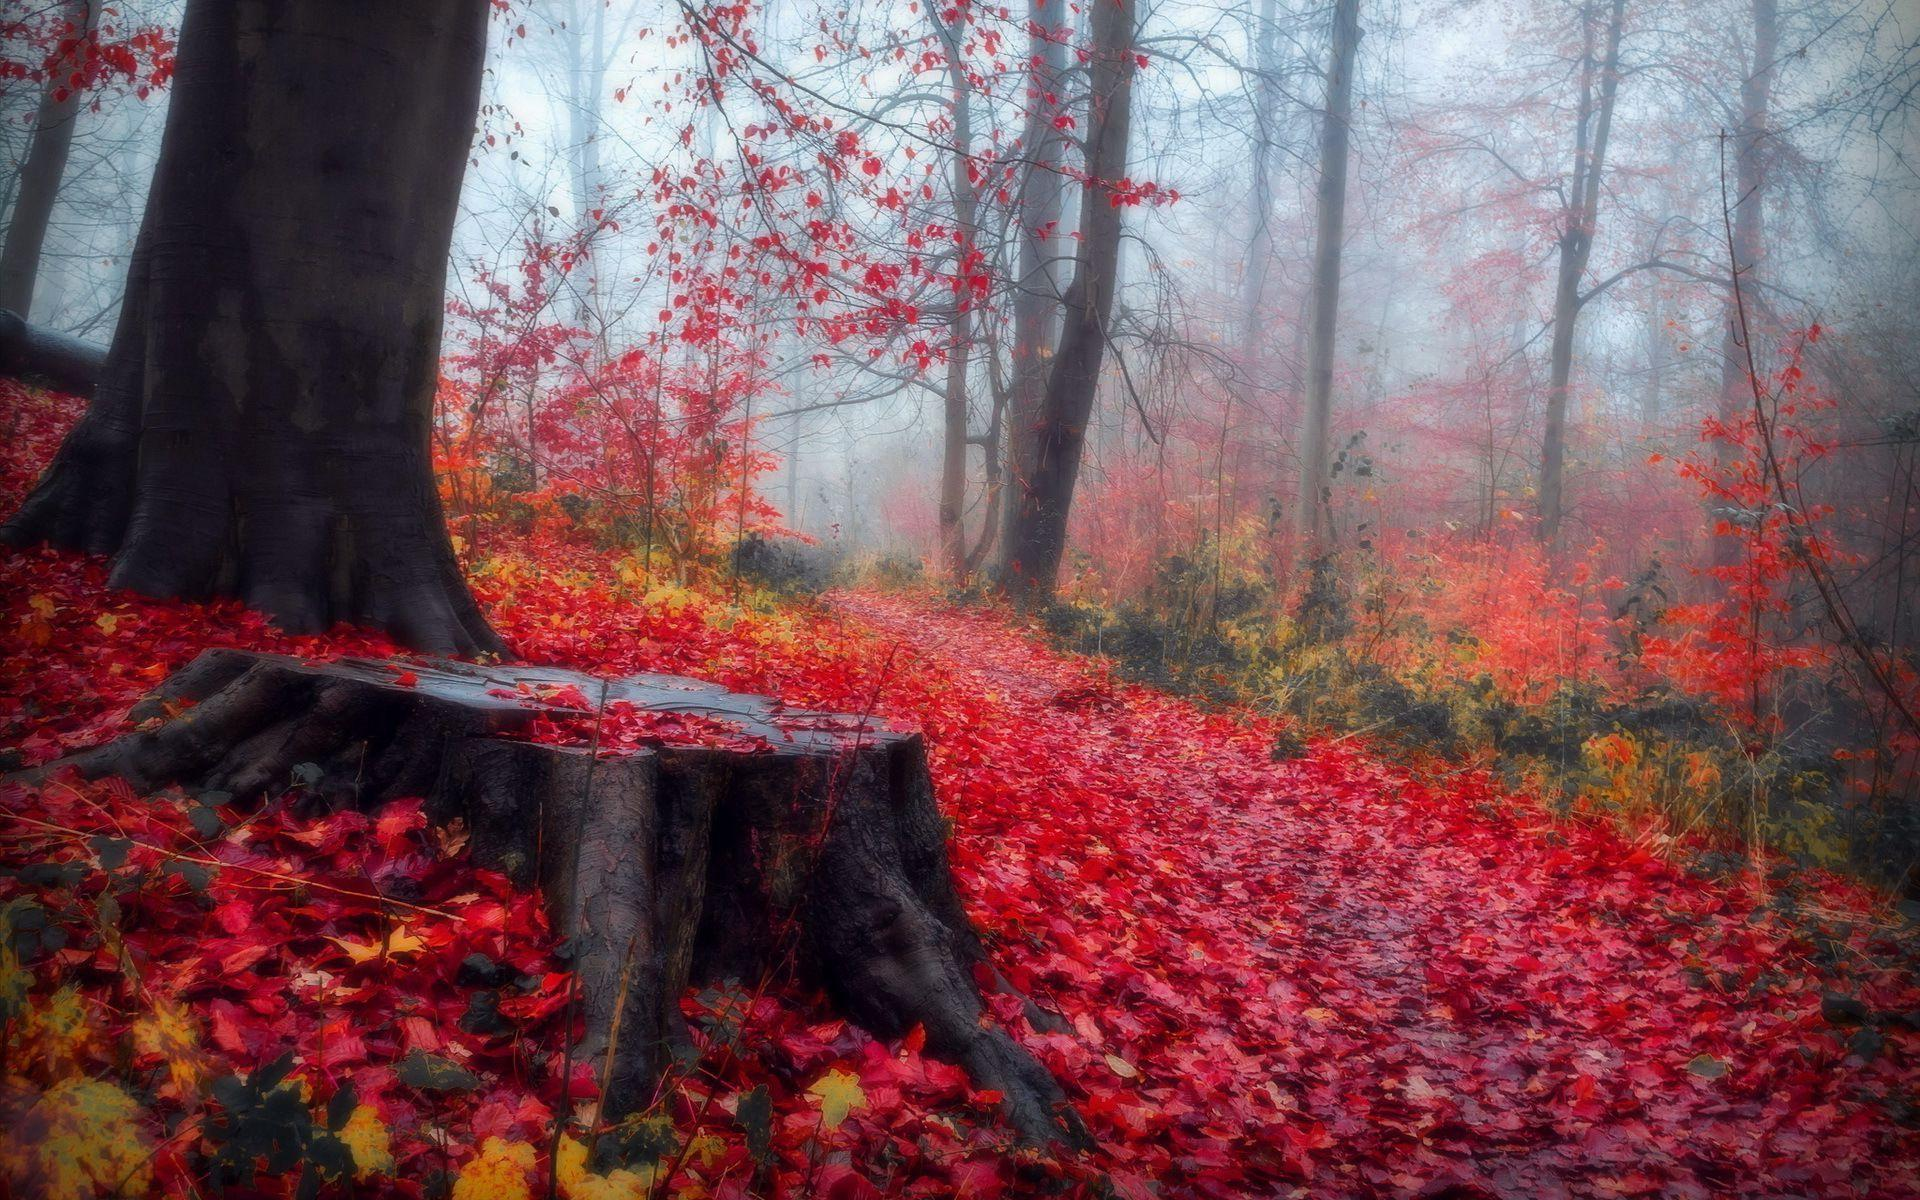 Fall Disney Wallpaper Hd Red Leaves In The Autumn Forest Wallpaper Download